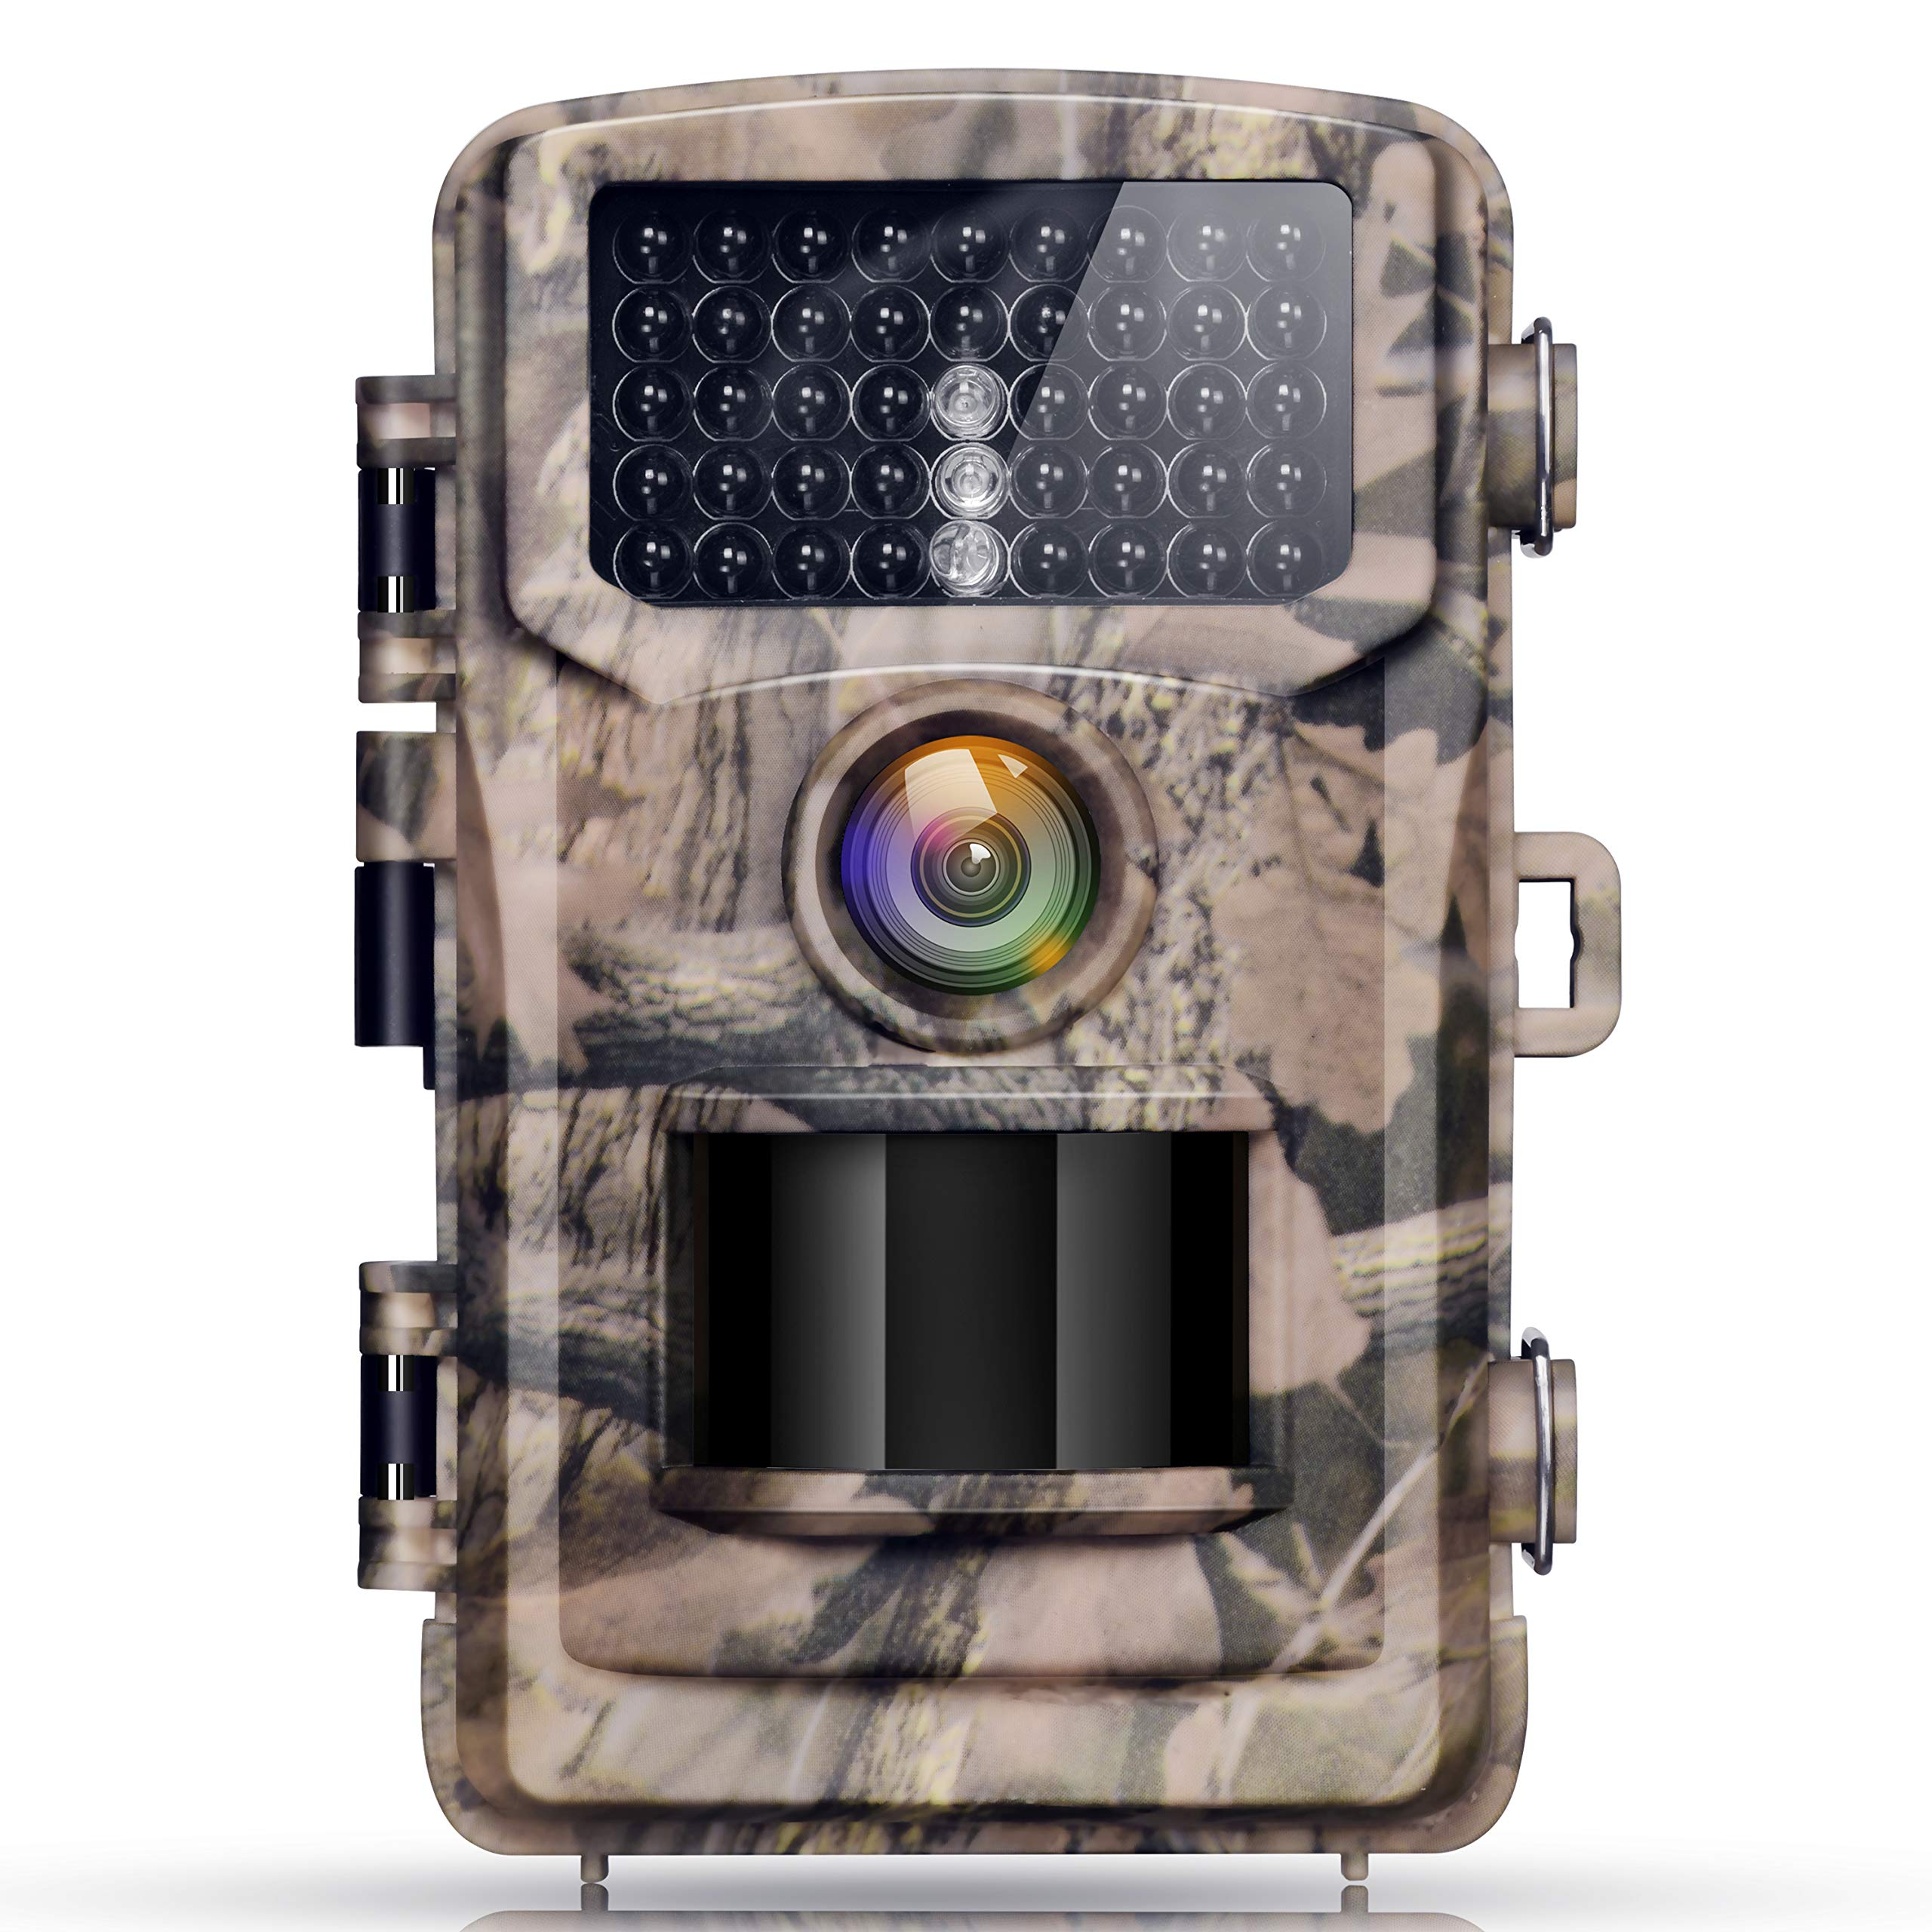 Campark Game Waterproof Trail Camera